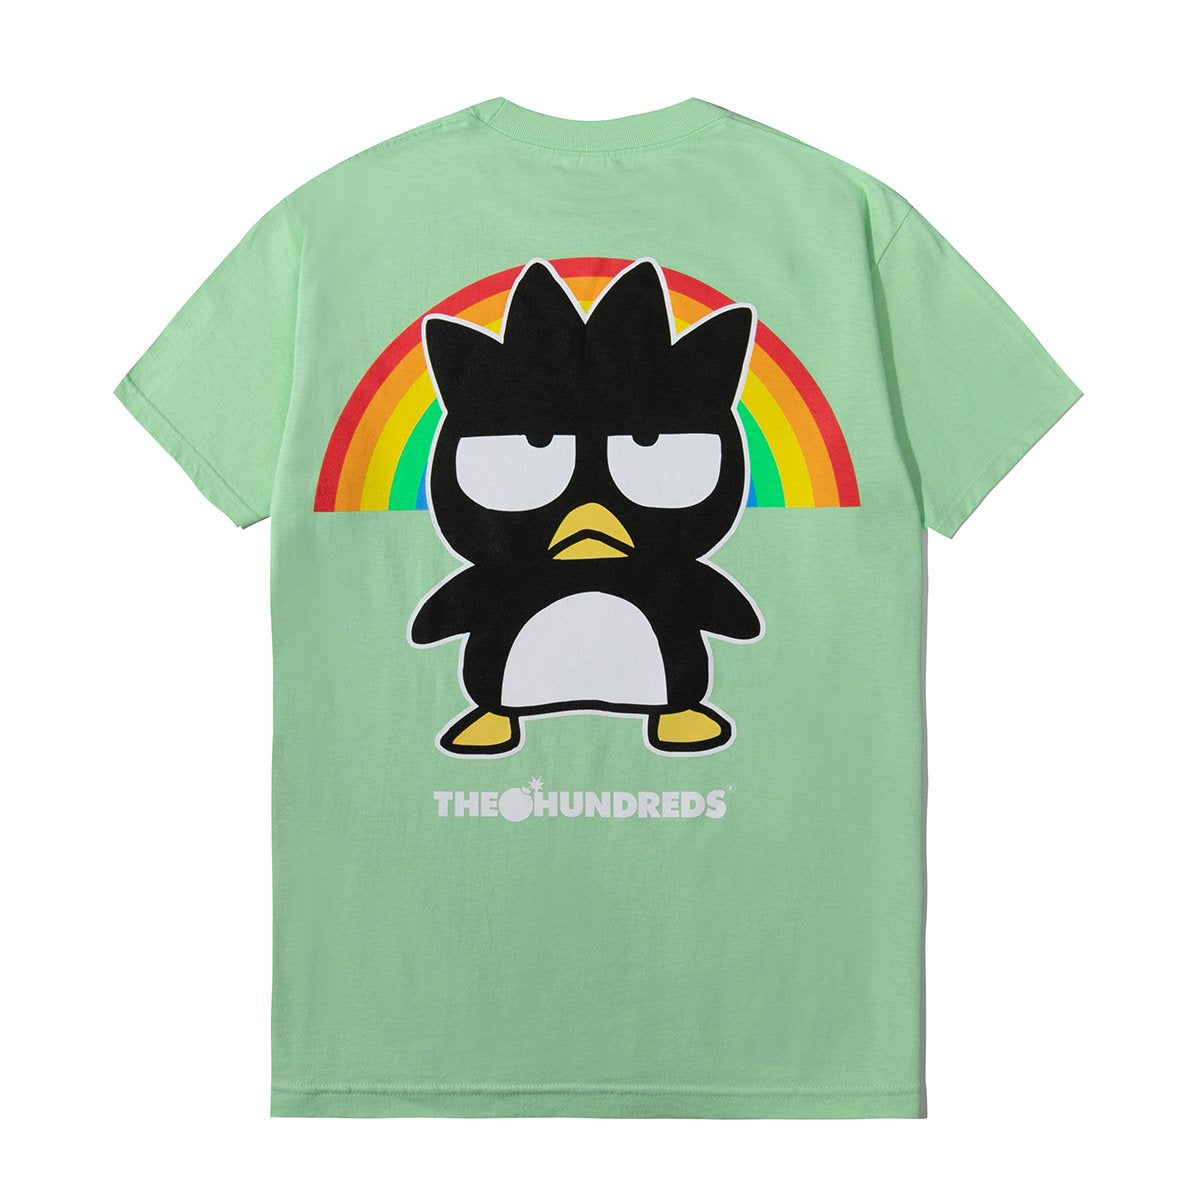 The Hundreds x Sanrio Badtz-Maru T-Shirt Green